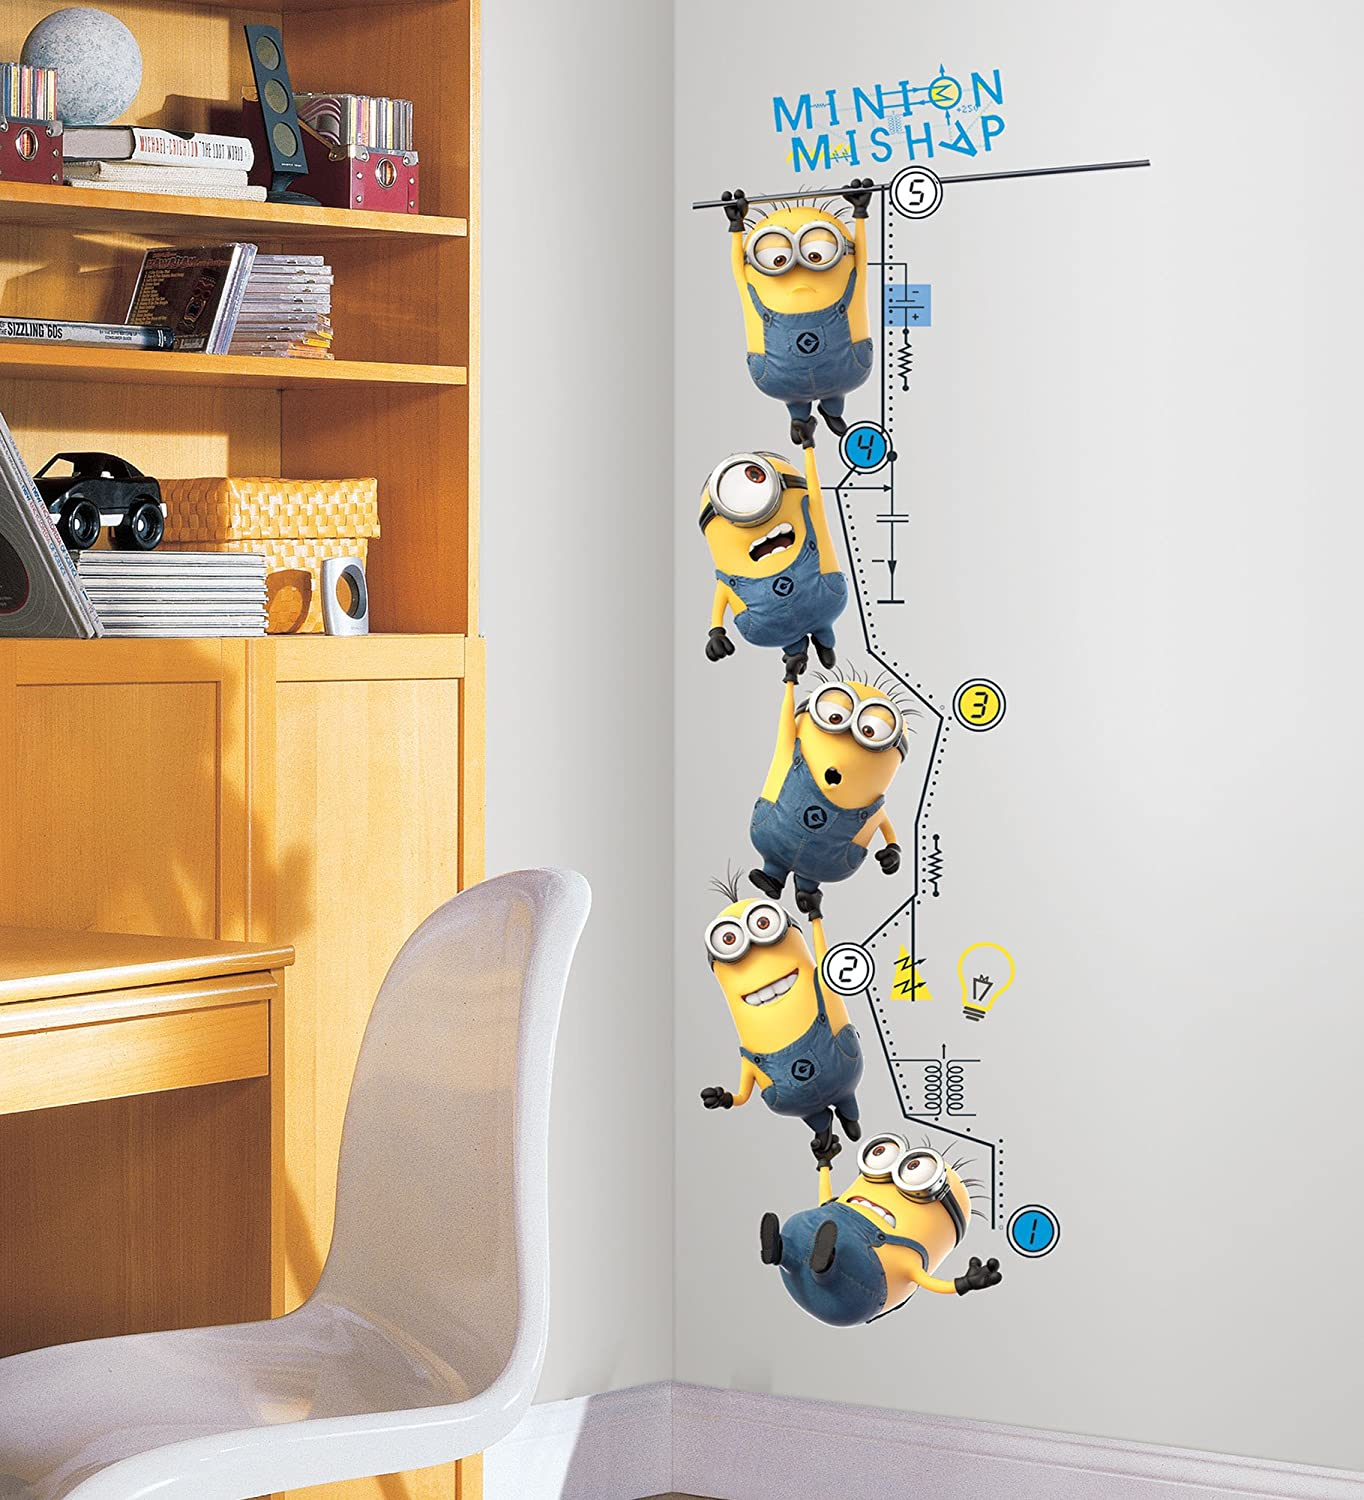 Roommates rmk2107gc despicable me 2 growth chart peel and stick wall roommates rmk2107gc despicable me 2 growth chart peel and stick wall decals wall decor stickers amazon geenschuldenfo Image collections